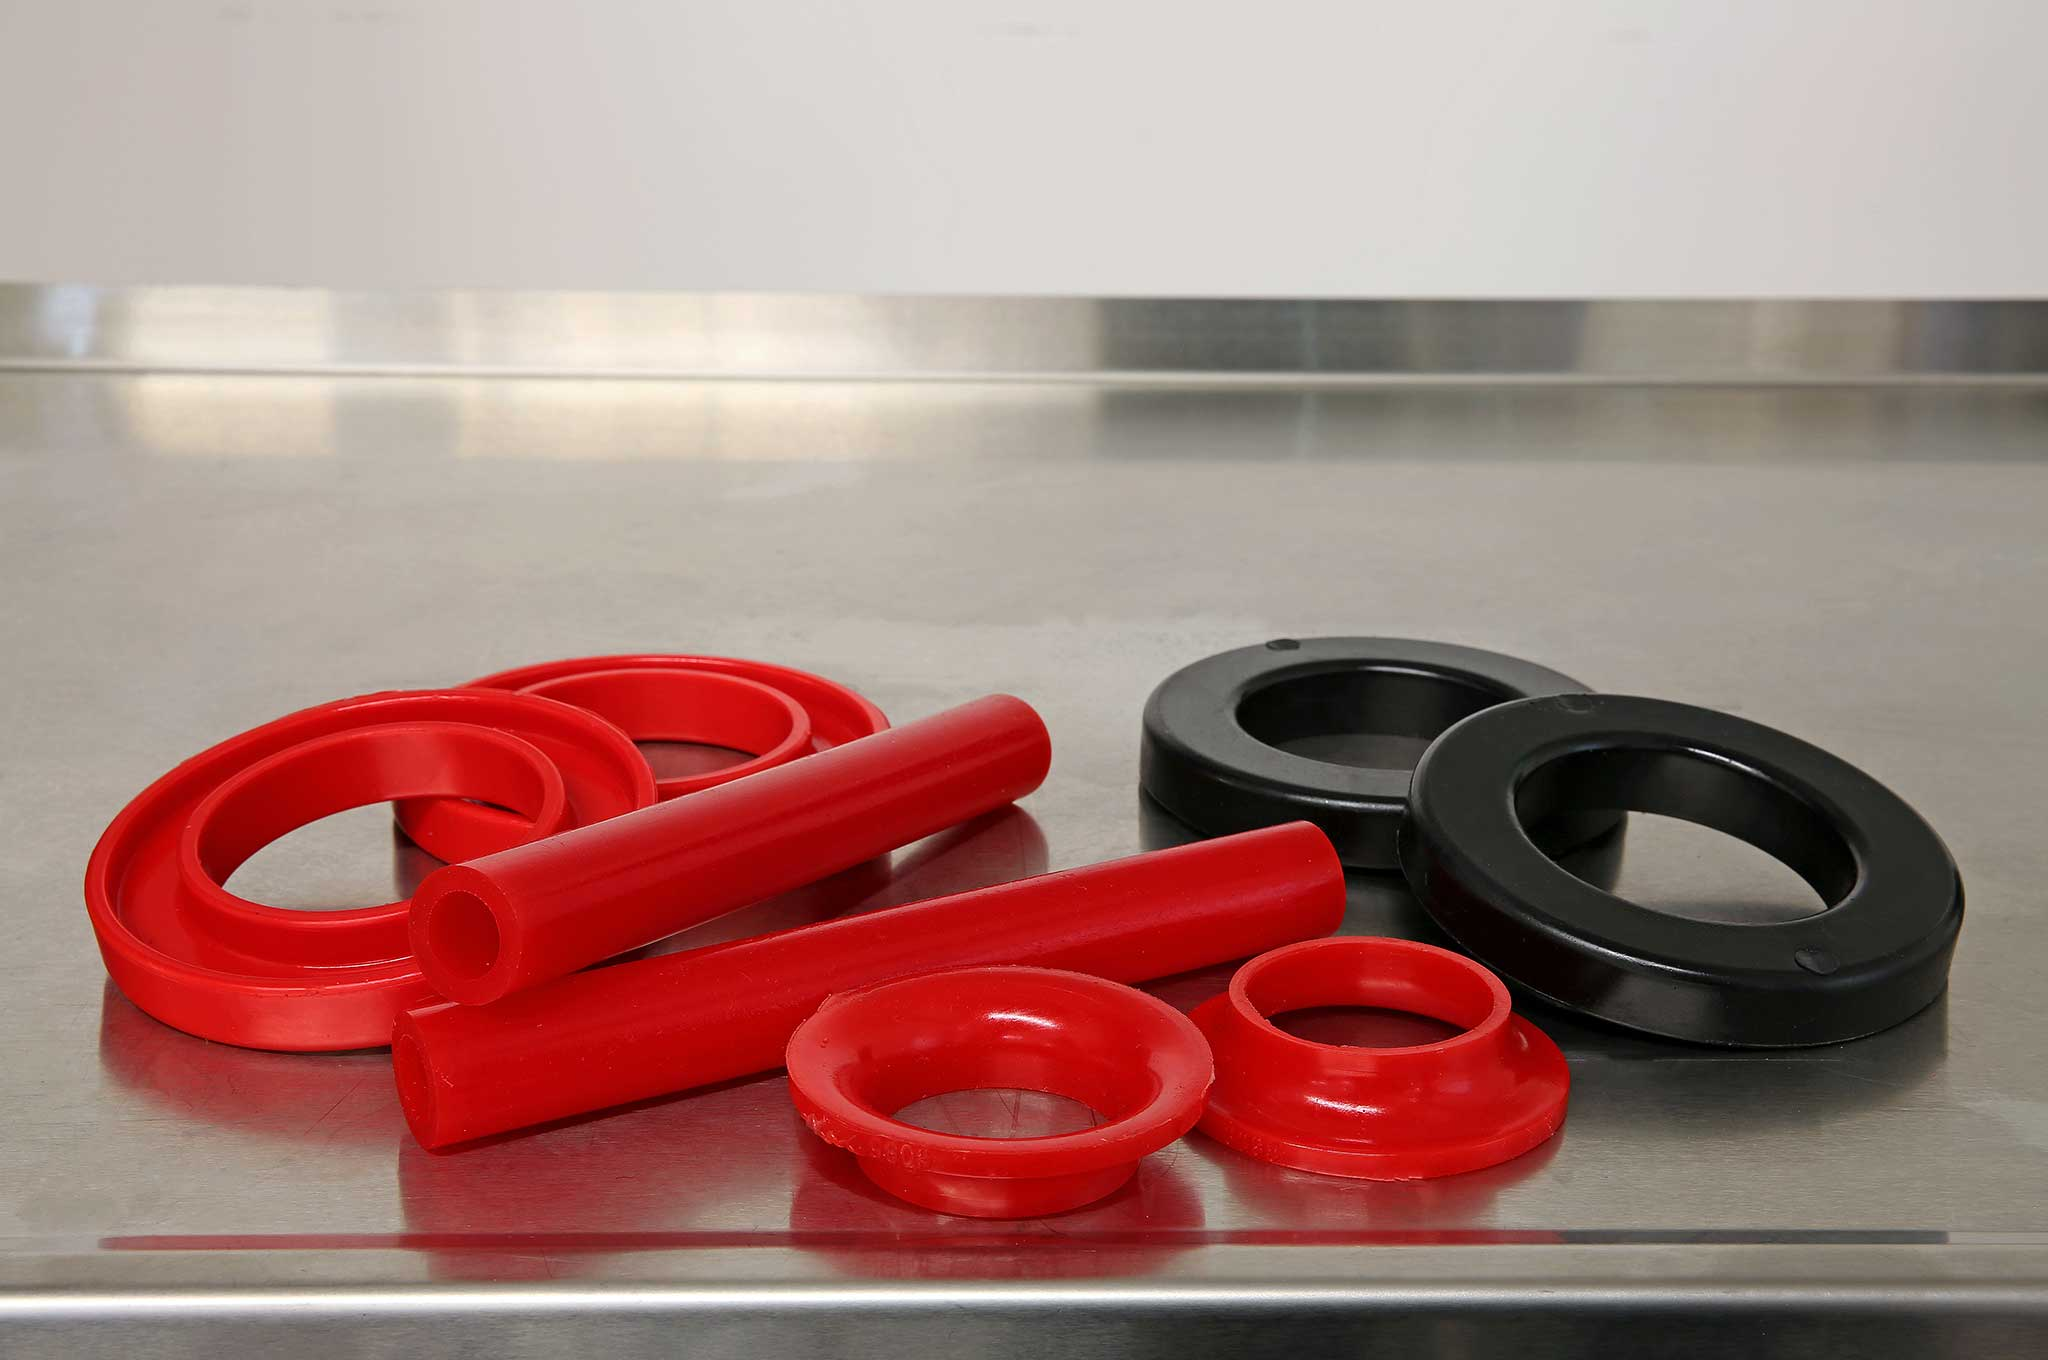 Energy Suspension Coil Spring Isolator And Pad Set Lowrider